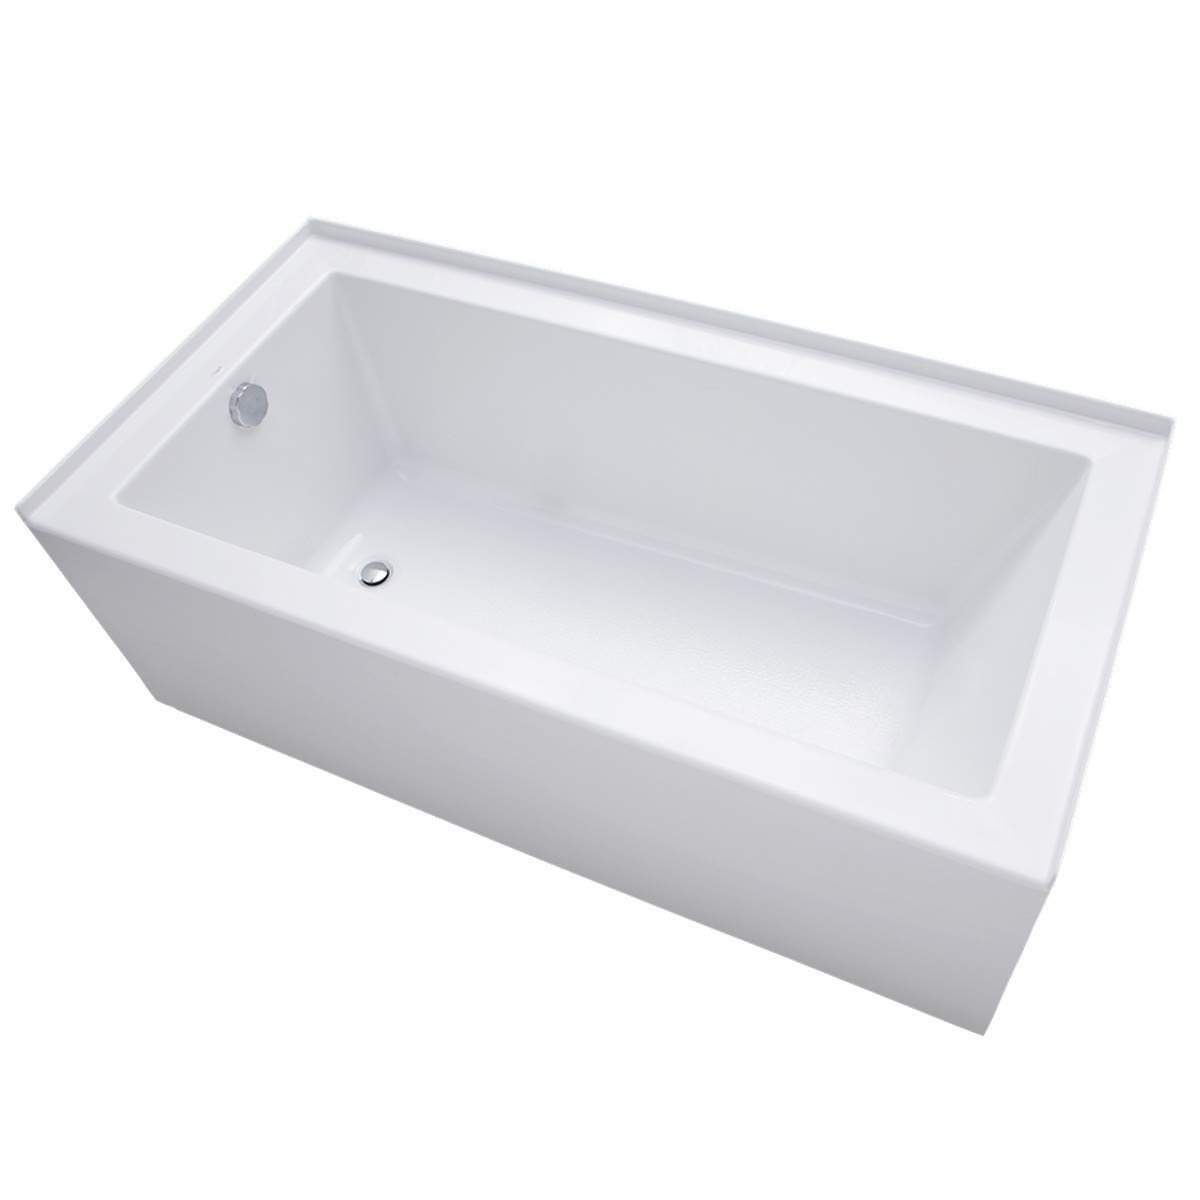 Mirabelle MIRSKS6032LWH Sitka 60 X 32 Acrylic Soaking Bathtub for Three Wall Alcove Installations with Left Drain